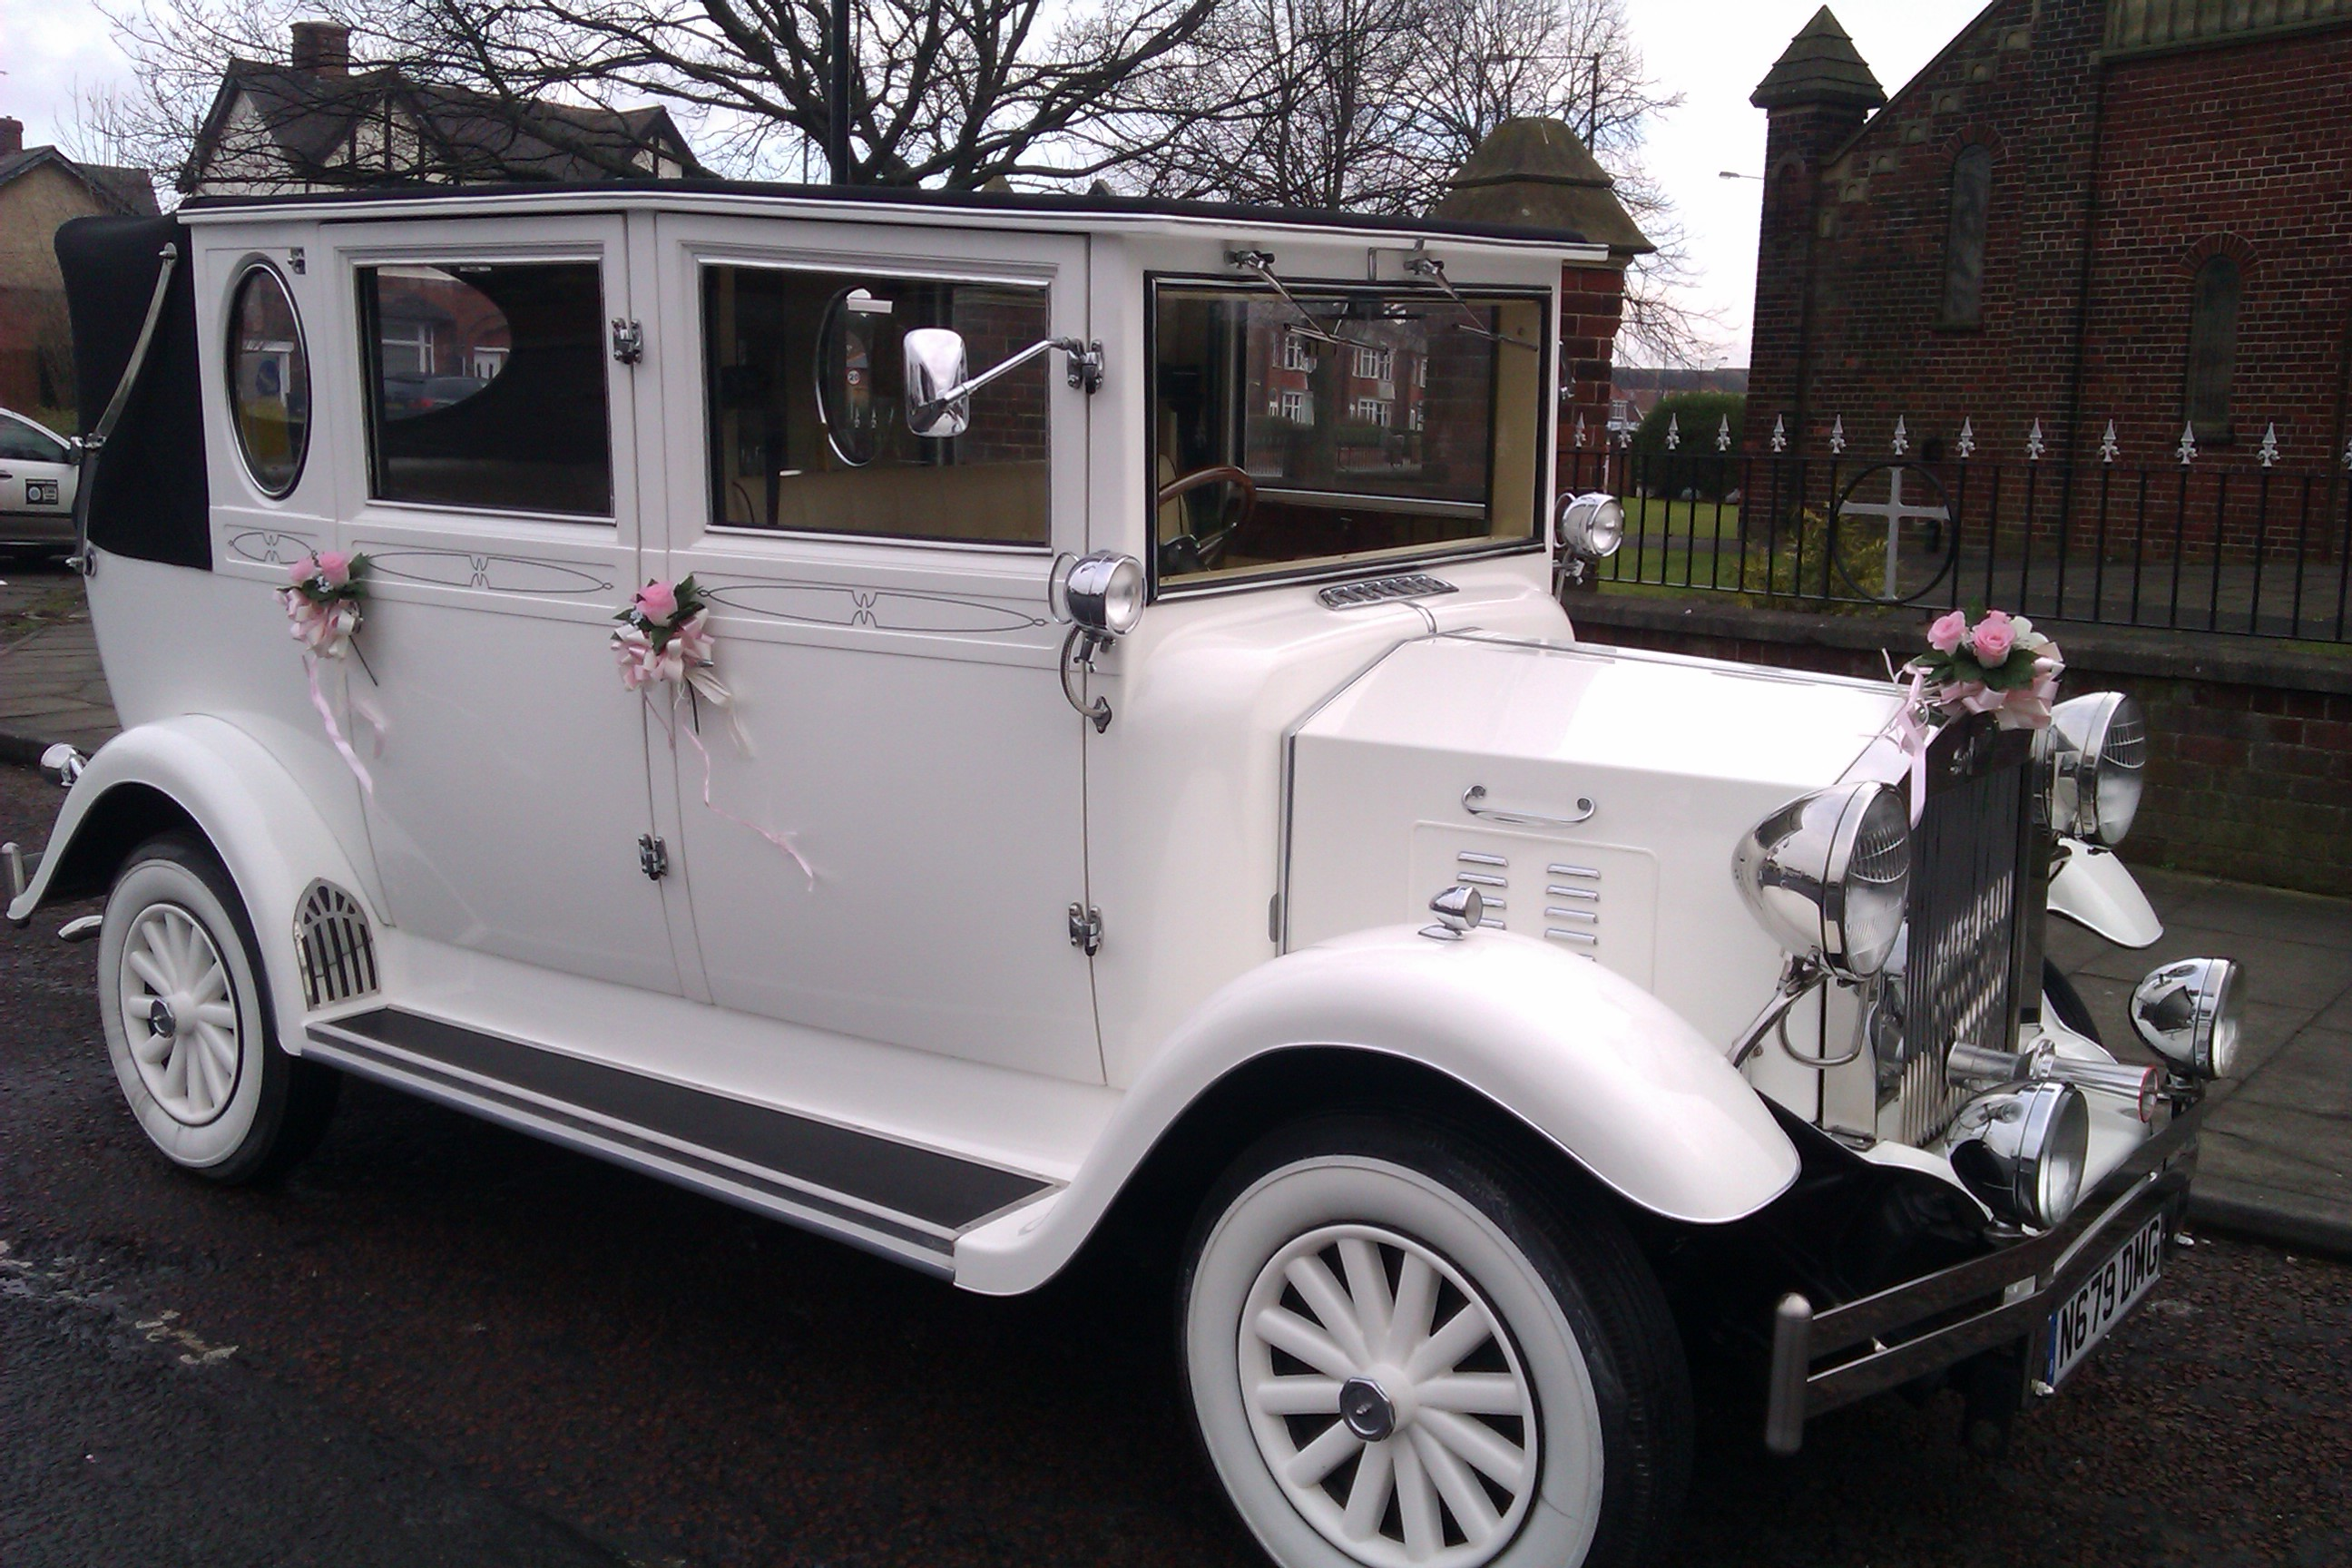 Vintage wedding car hire Middlesbrough, Stockton, Hartlepool, Darlington, Durham and the north east. Redcar and Whitby also covered.